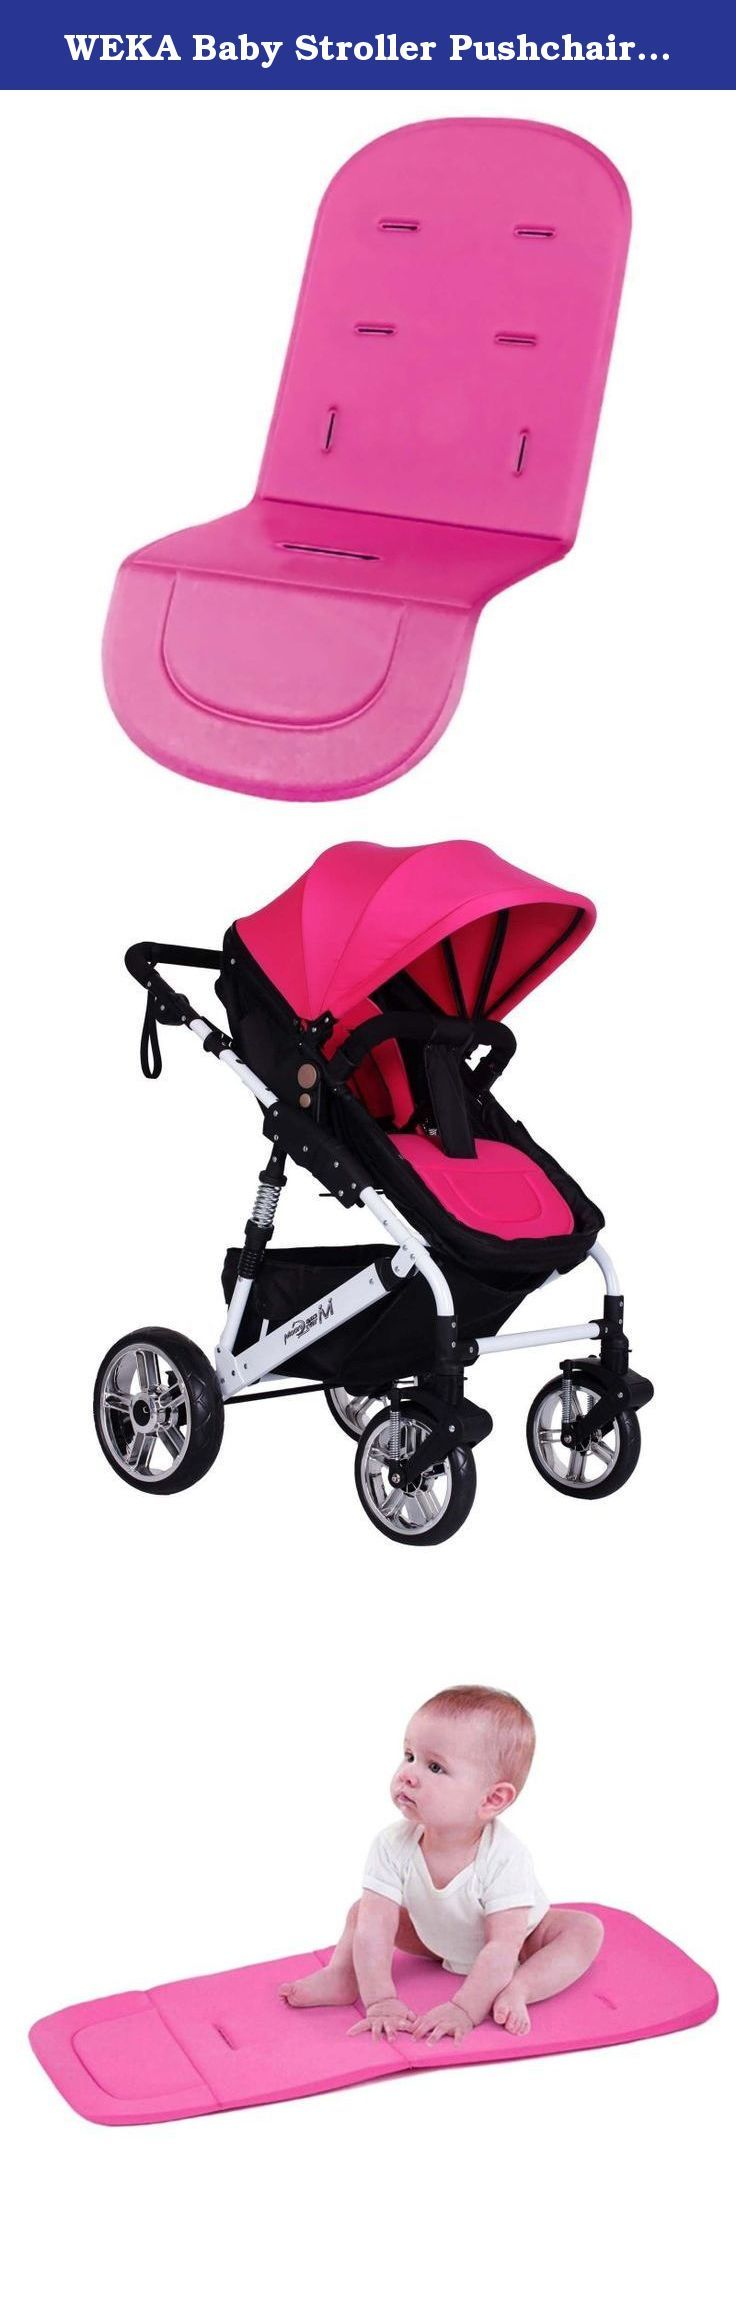 WEKA Baby Stroller Pushchair Car Seat Cover Pad Liner Pram Accessories Peach. Description: Environment and safety for baby pram The Stroller Padding/Liner is a soft and comfy padding for your child to be cuddled in Its a celebration of softness for your baby . The Padding is machine washable (30 Deg.) and is very easy to attach or remove It has special slits for the pram straps Cushion for: Chair, strollers, car seats, strollers and chairs and other products General style, comfortable...